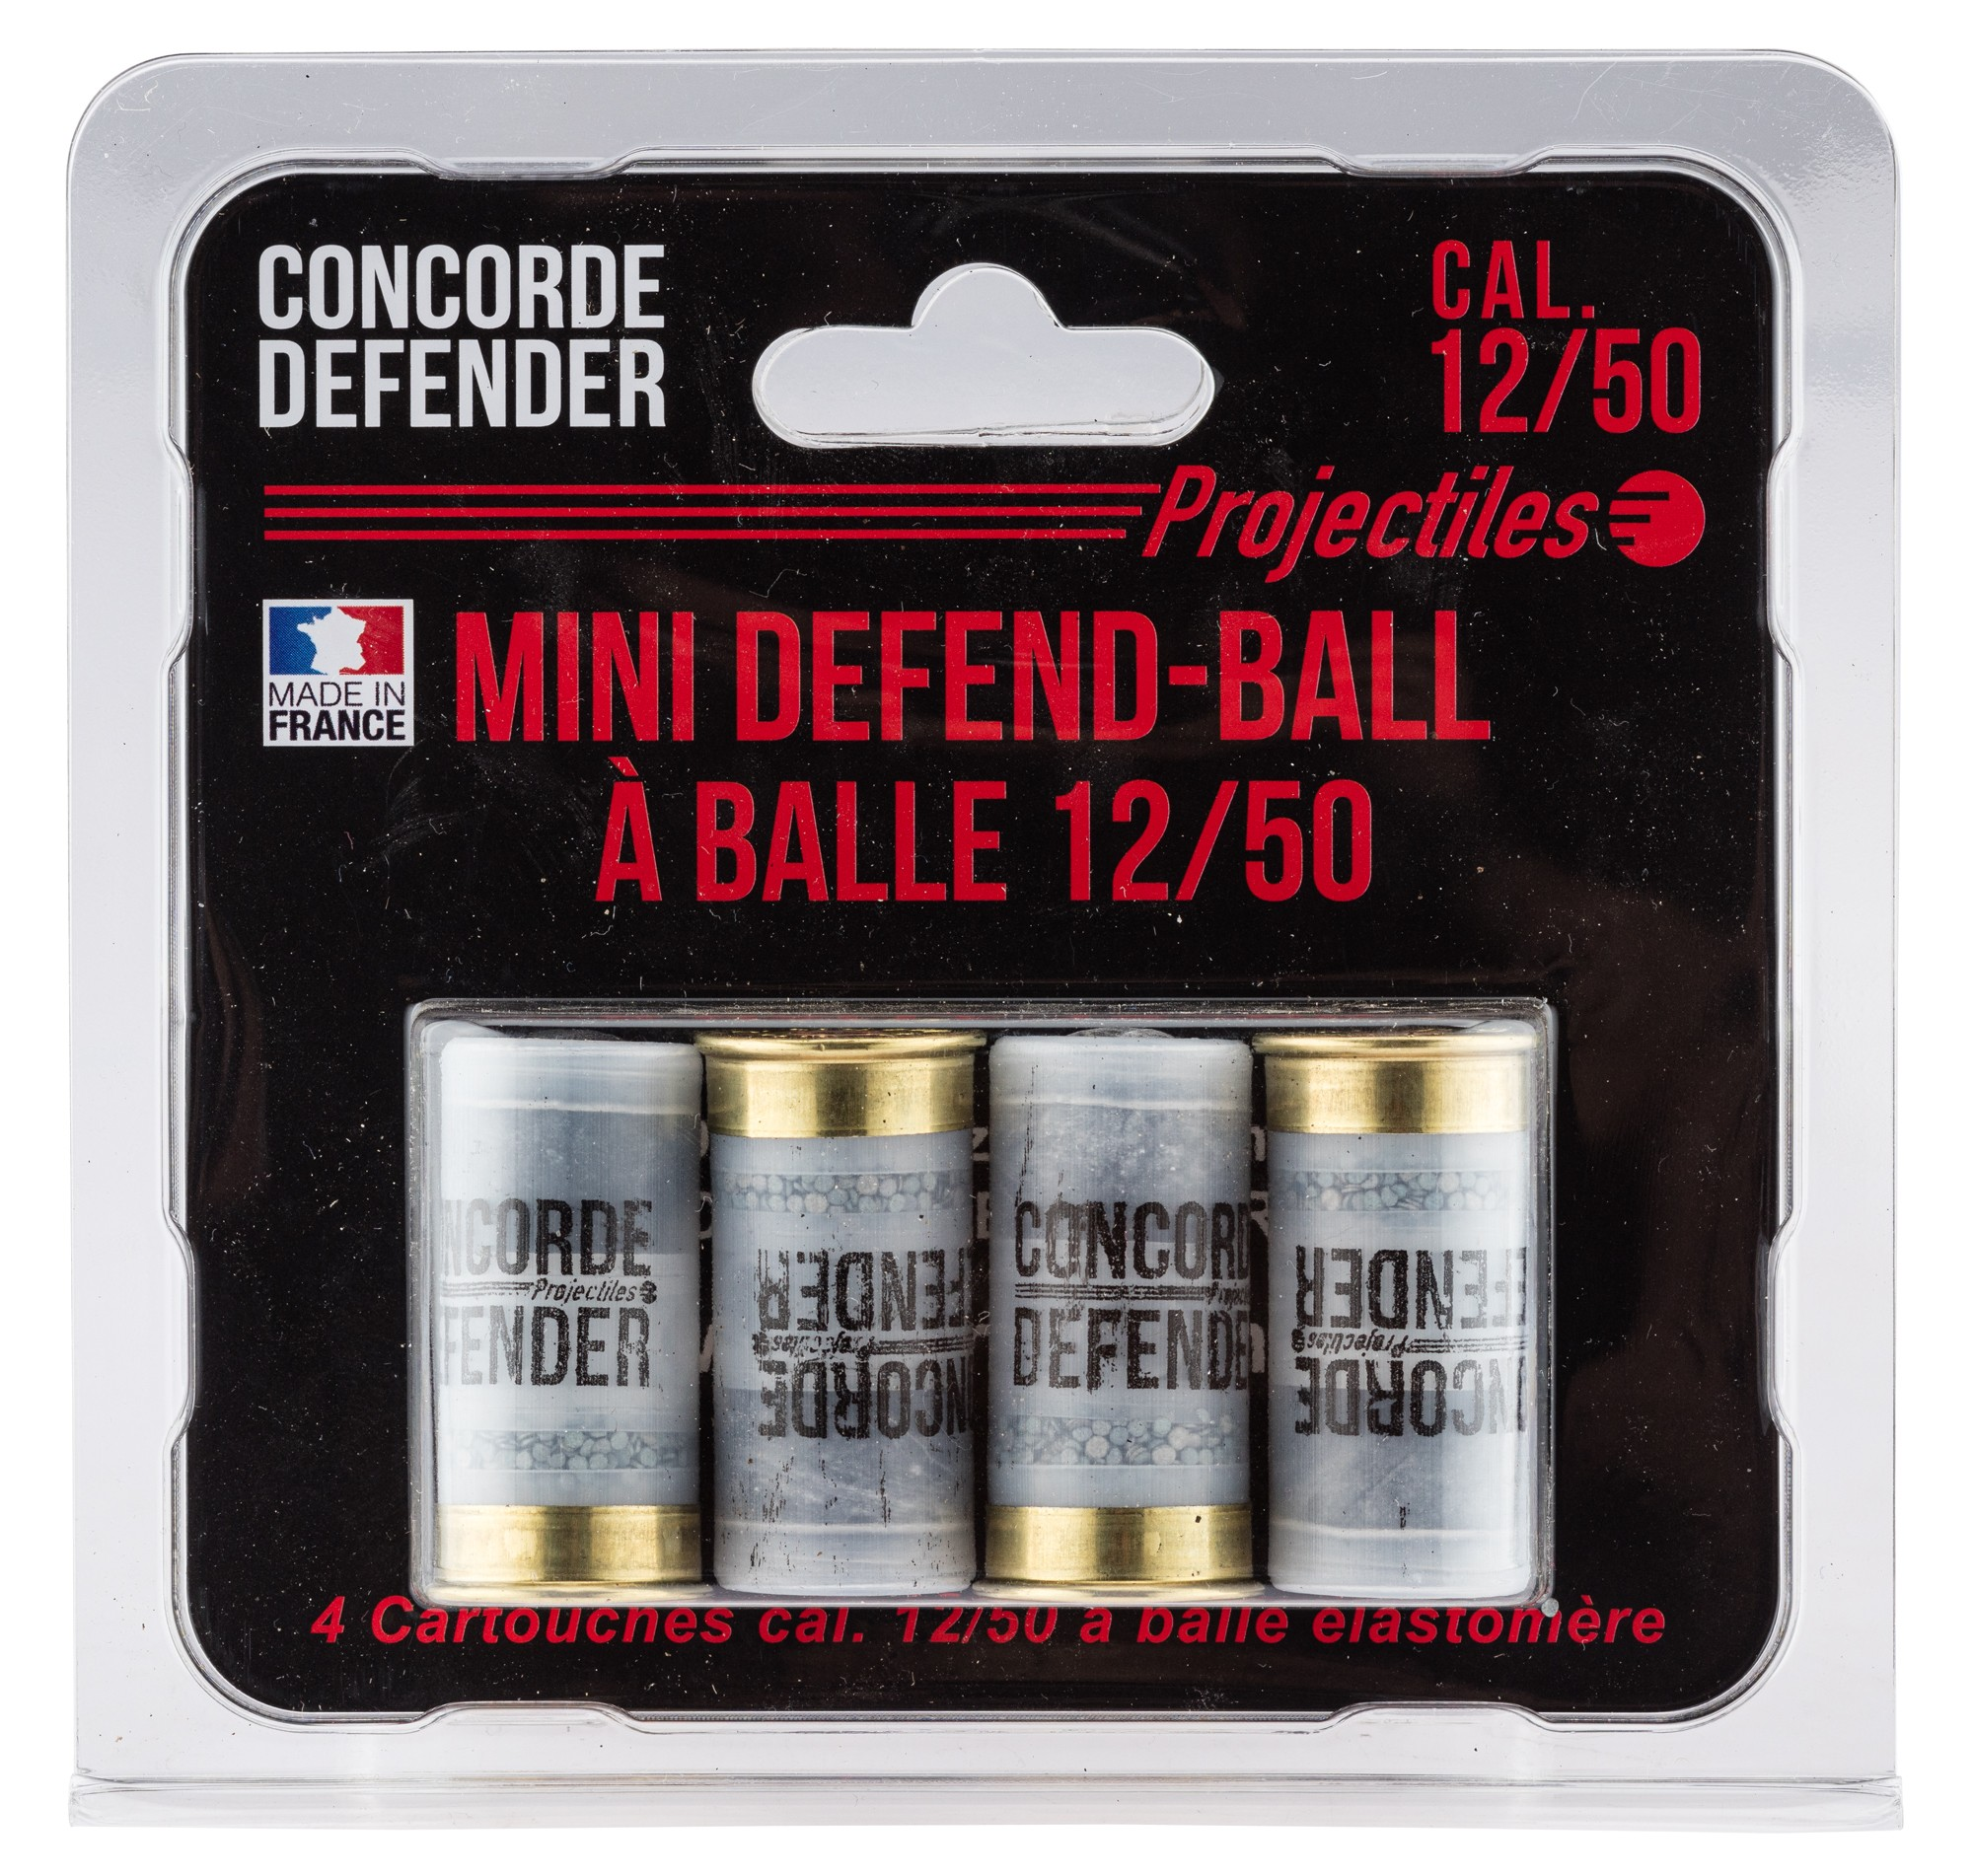 MD0413 4 cartouches Mini Defend-Ball cal. 12/50 à balle Elastomere Bior - MD0413